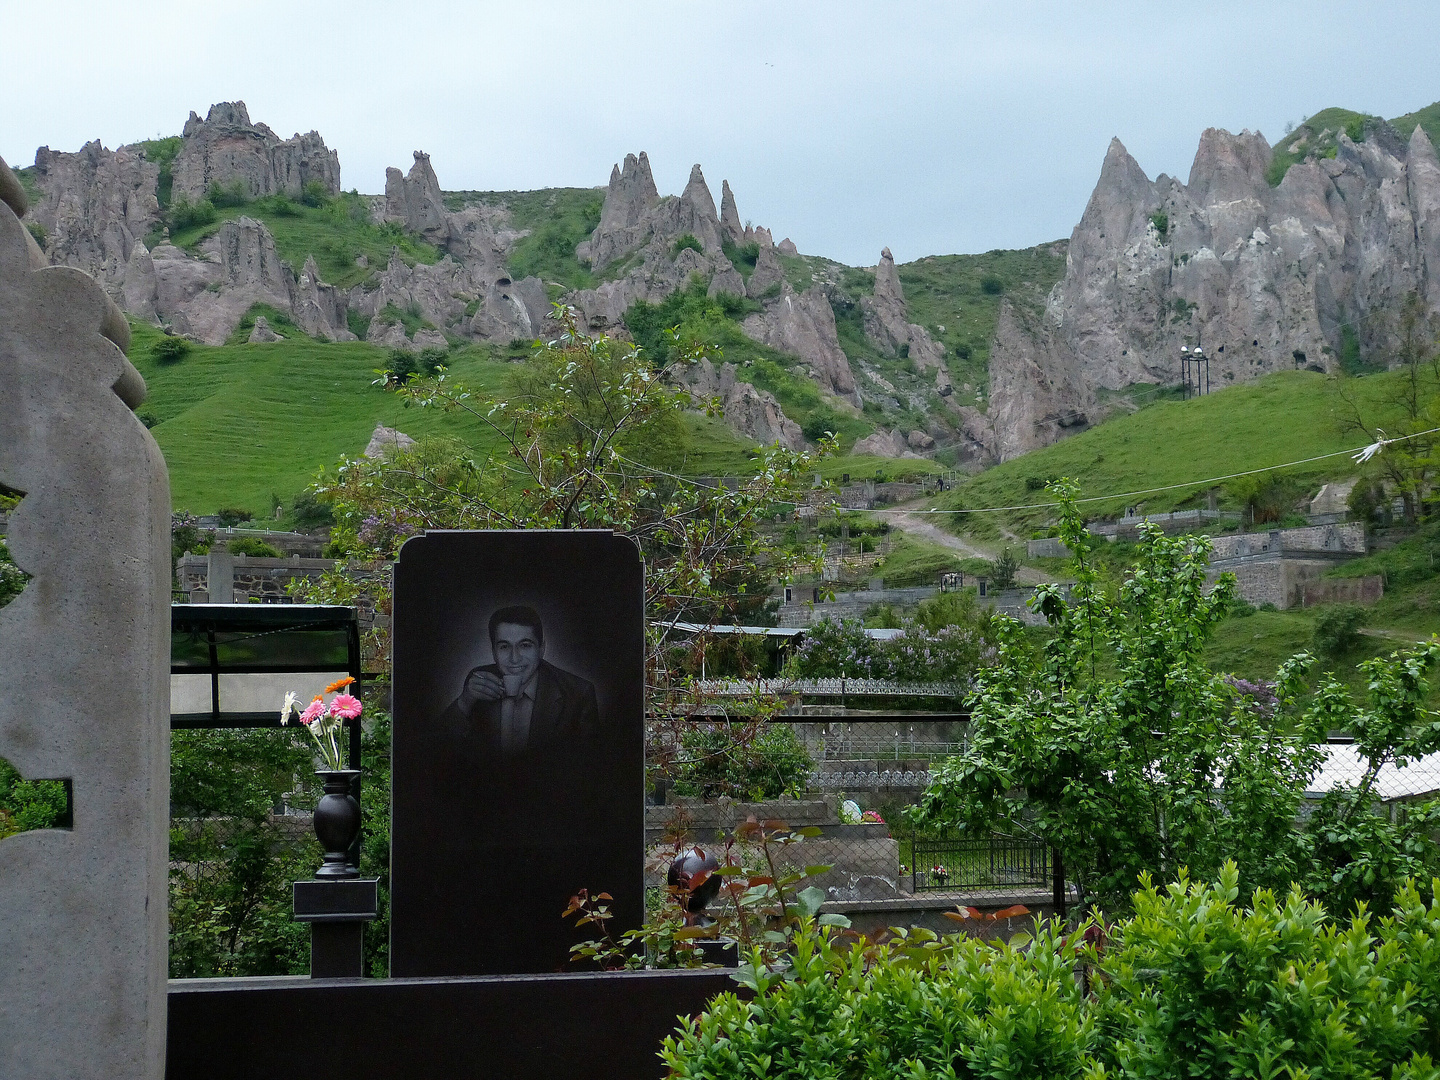 Friedhof in Goris.